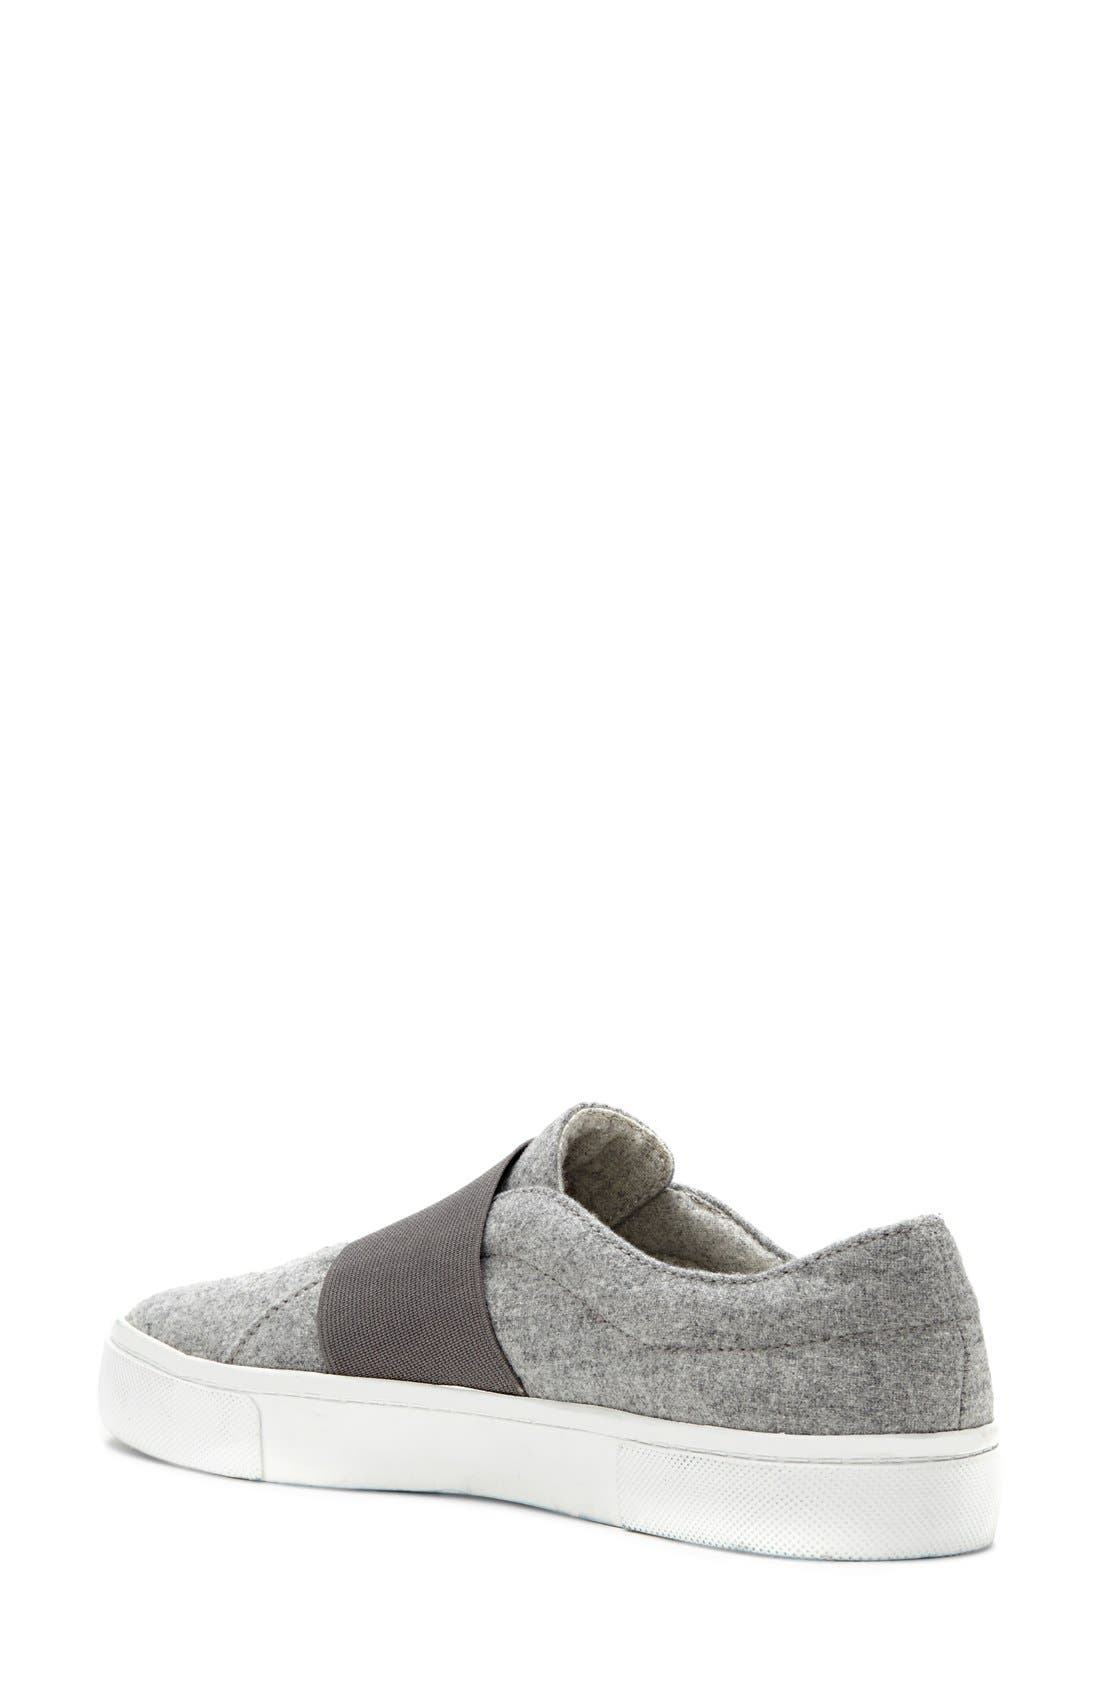 Alternate Image 2  - ED Ellen DeGeneres 'Fairbank' Slip-On Sneaker (Women)